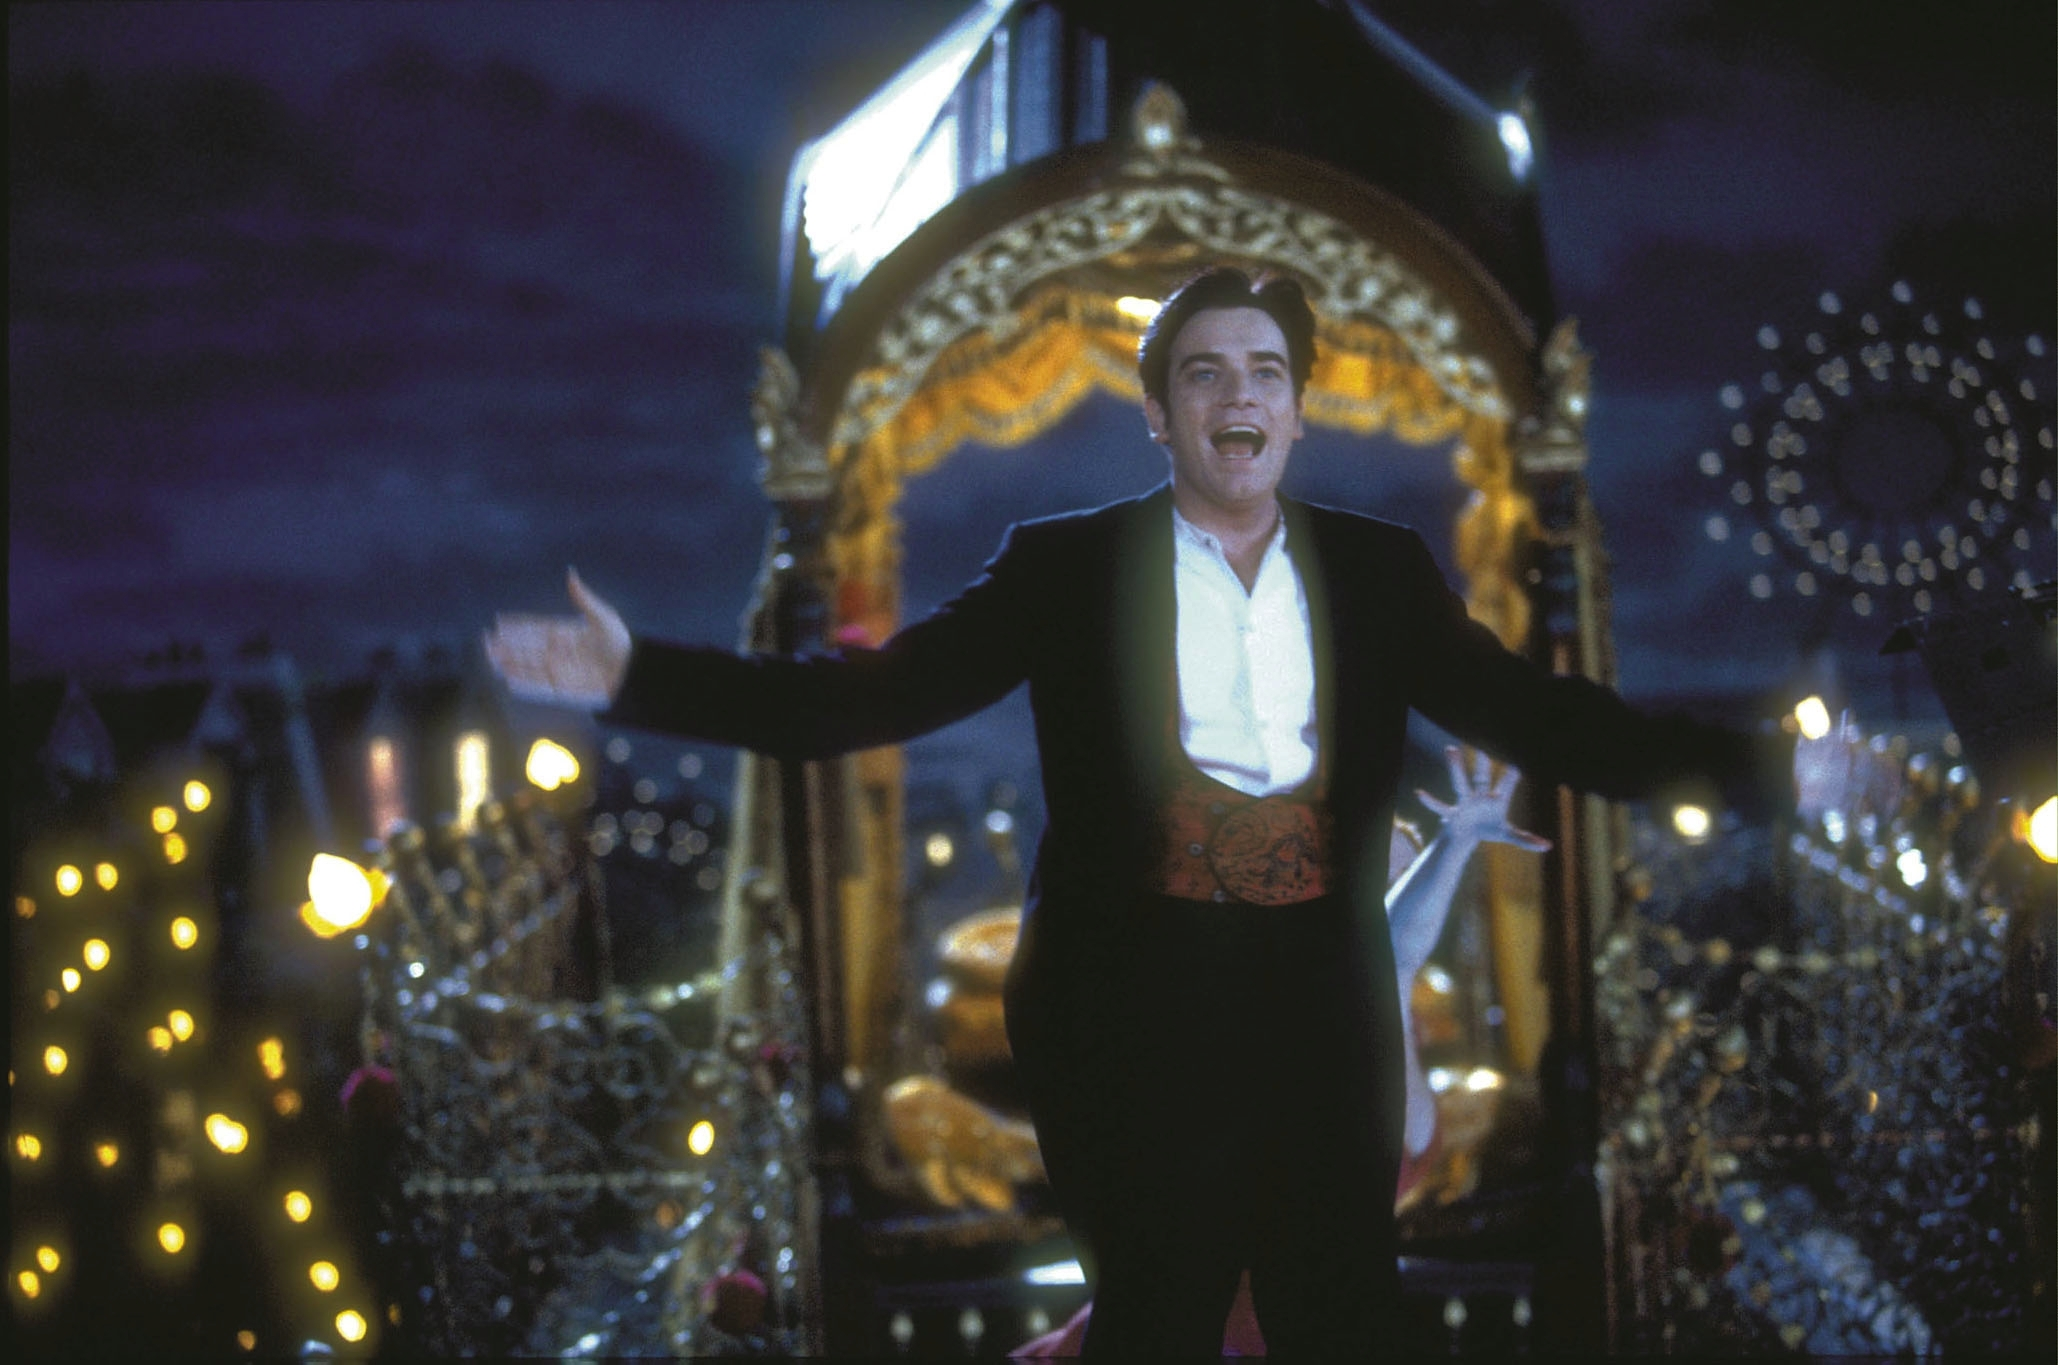 Ewan McGregor in Moulin Rouge